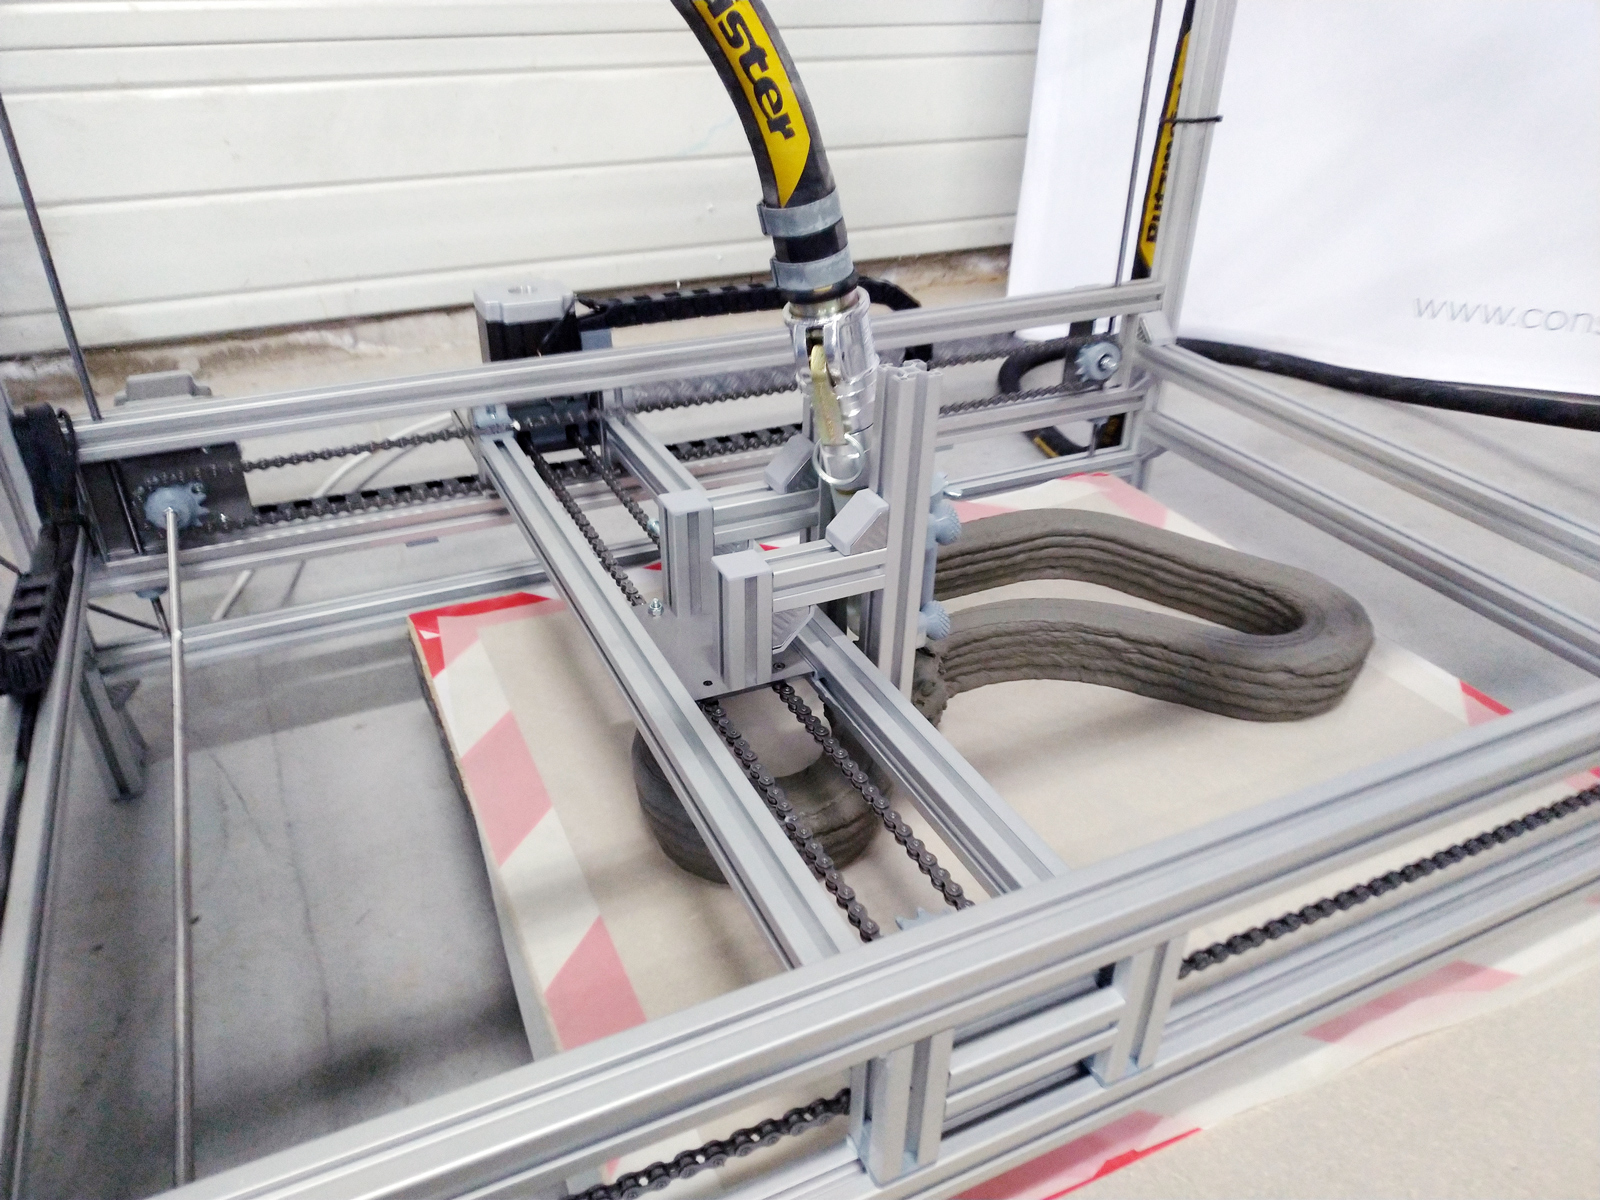 Imprimante-3D-beton-Mini-Printer-2